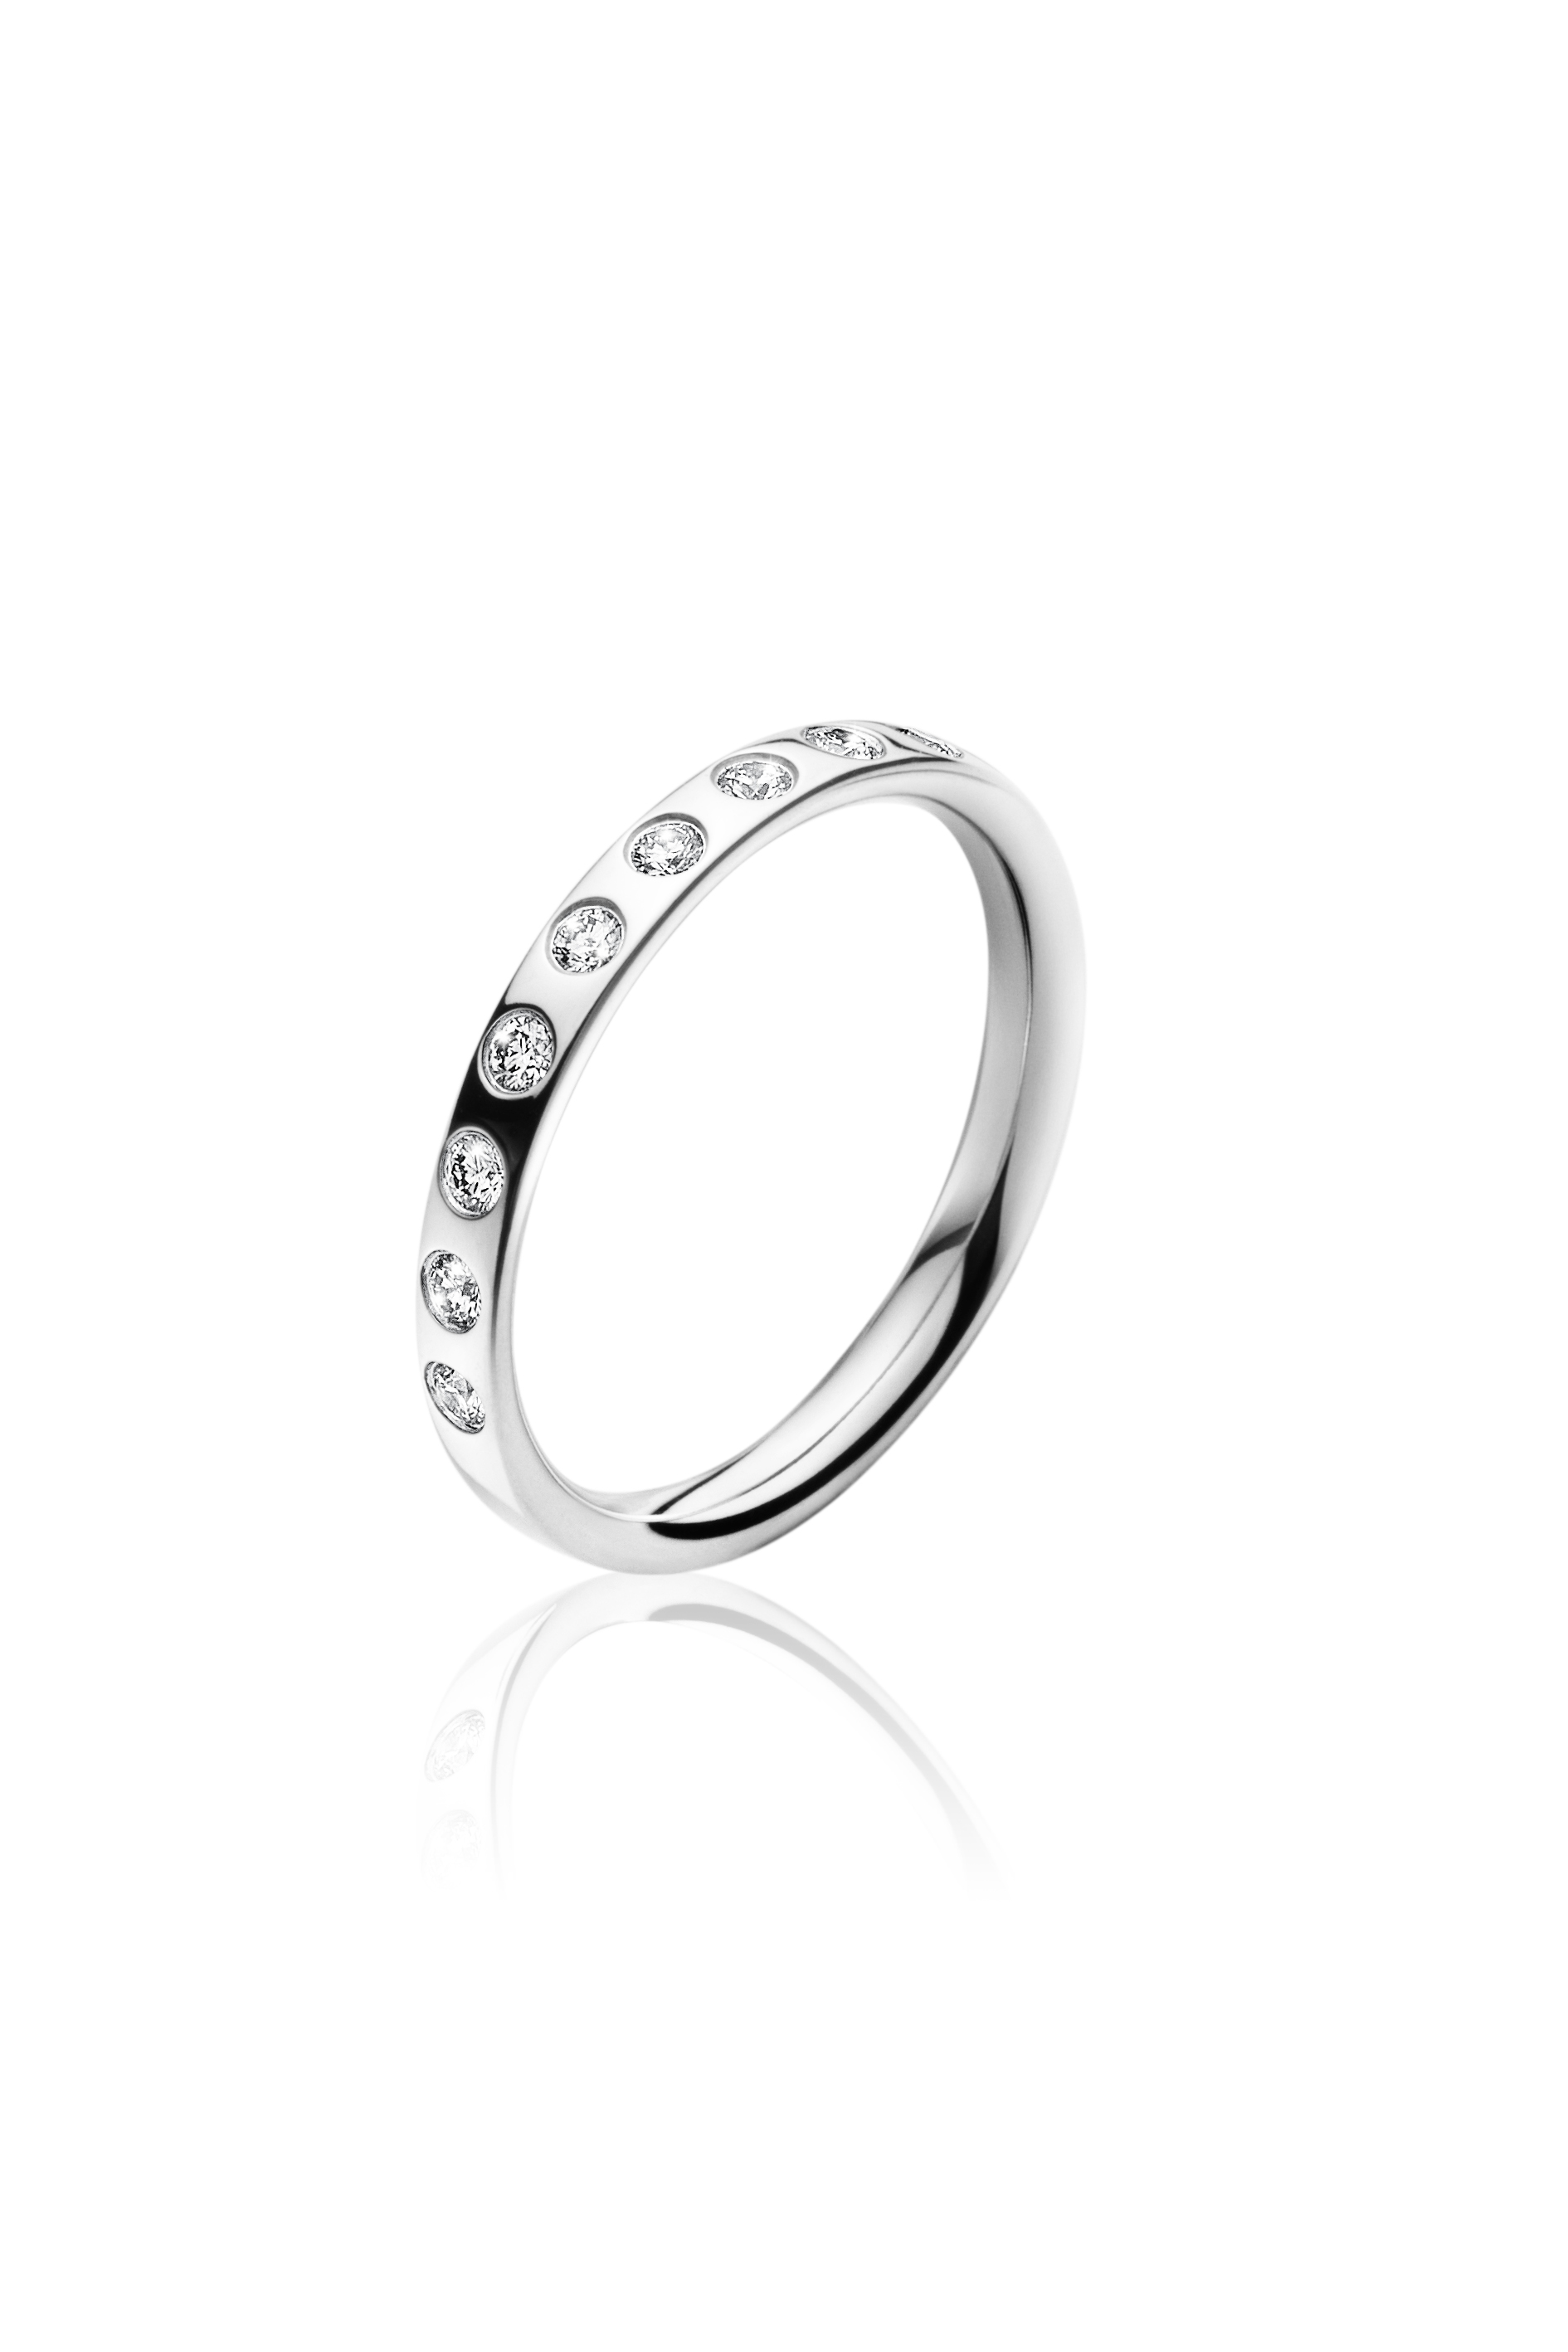 Image of   Georg Jensen MAGIC ring - 3569900 Størrelse 51